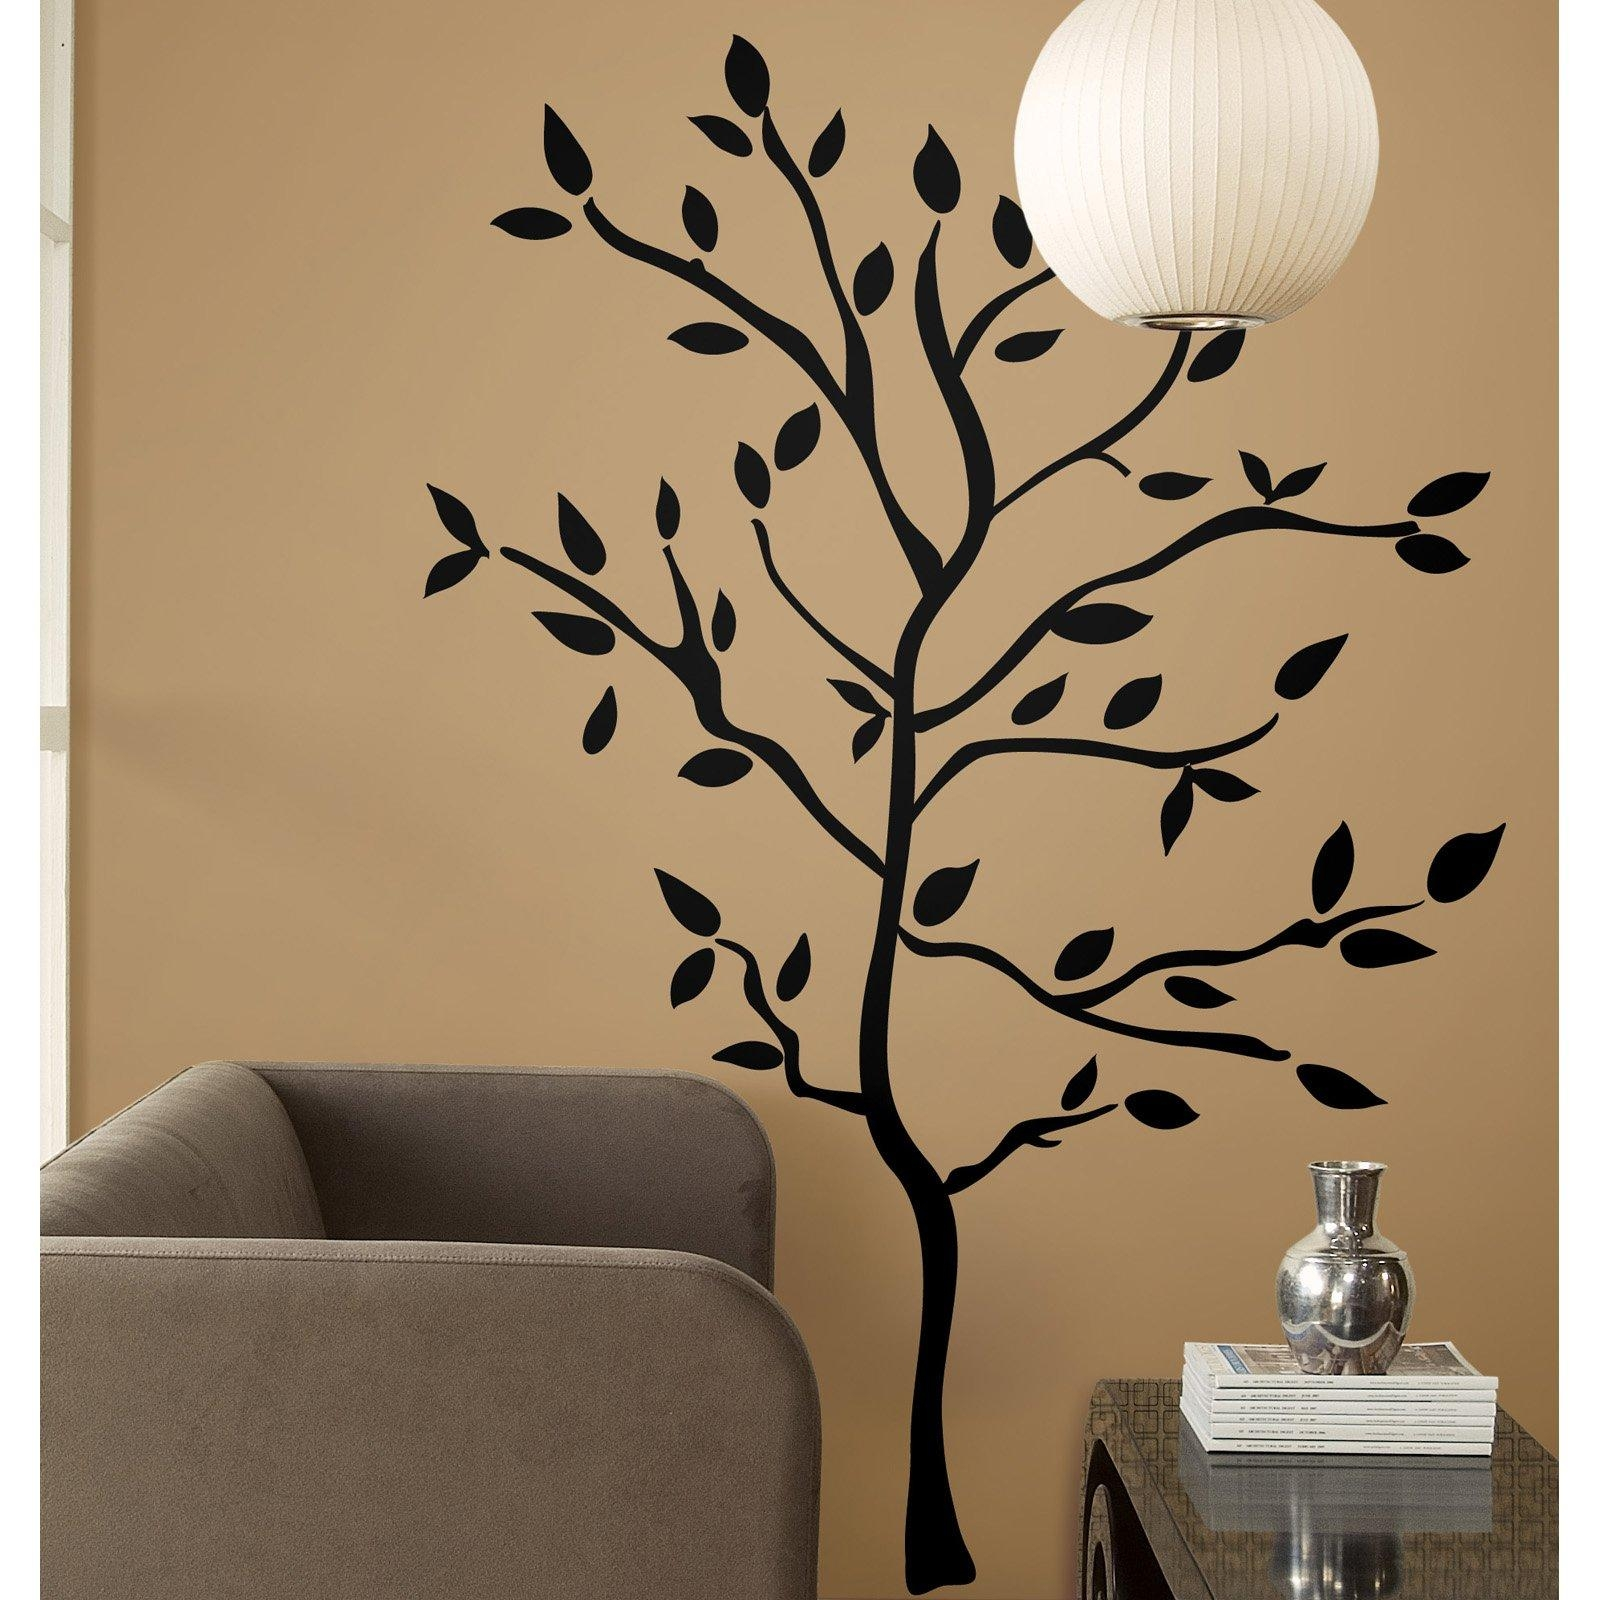 Tree Branches Peel And Stick Wall Decals – Walmart Intended For Walmart Wall Stickers (Image 18 of 20)